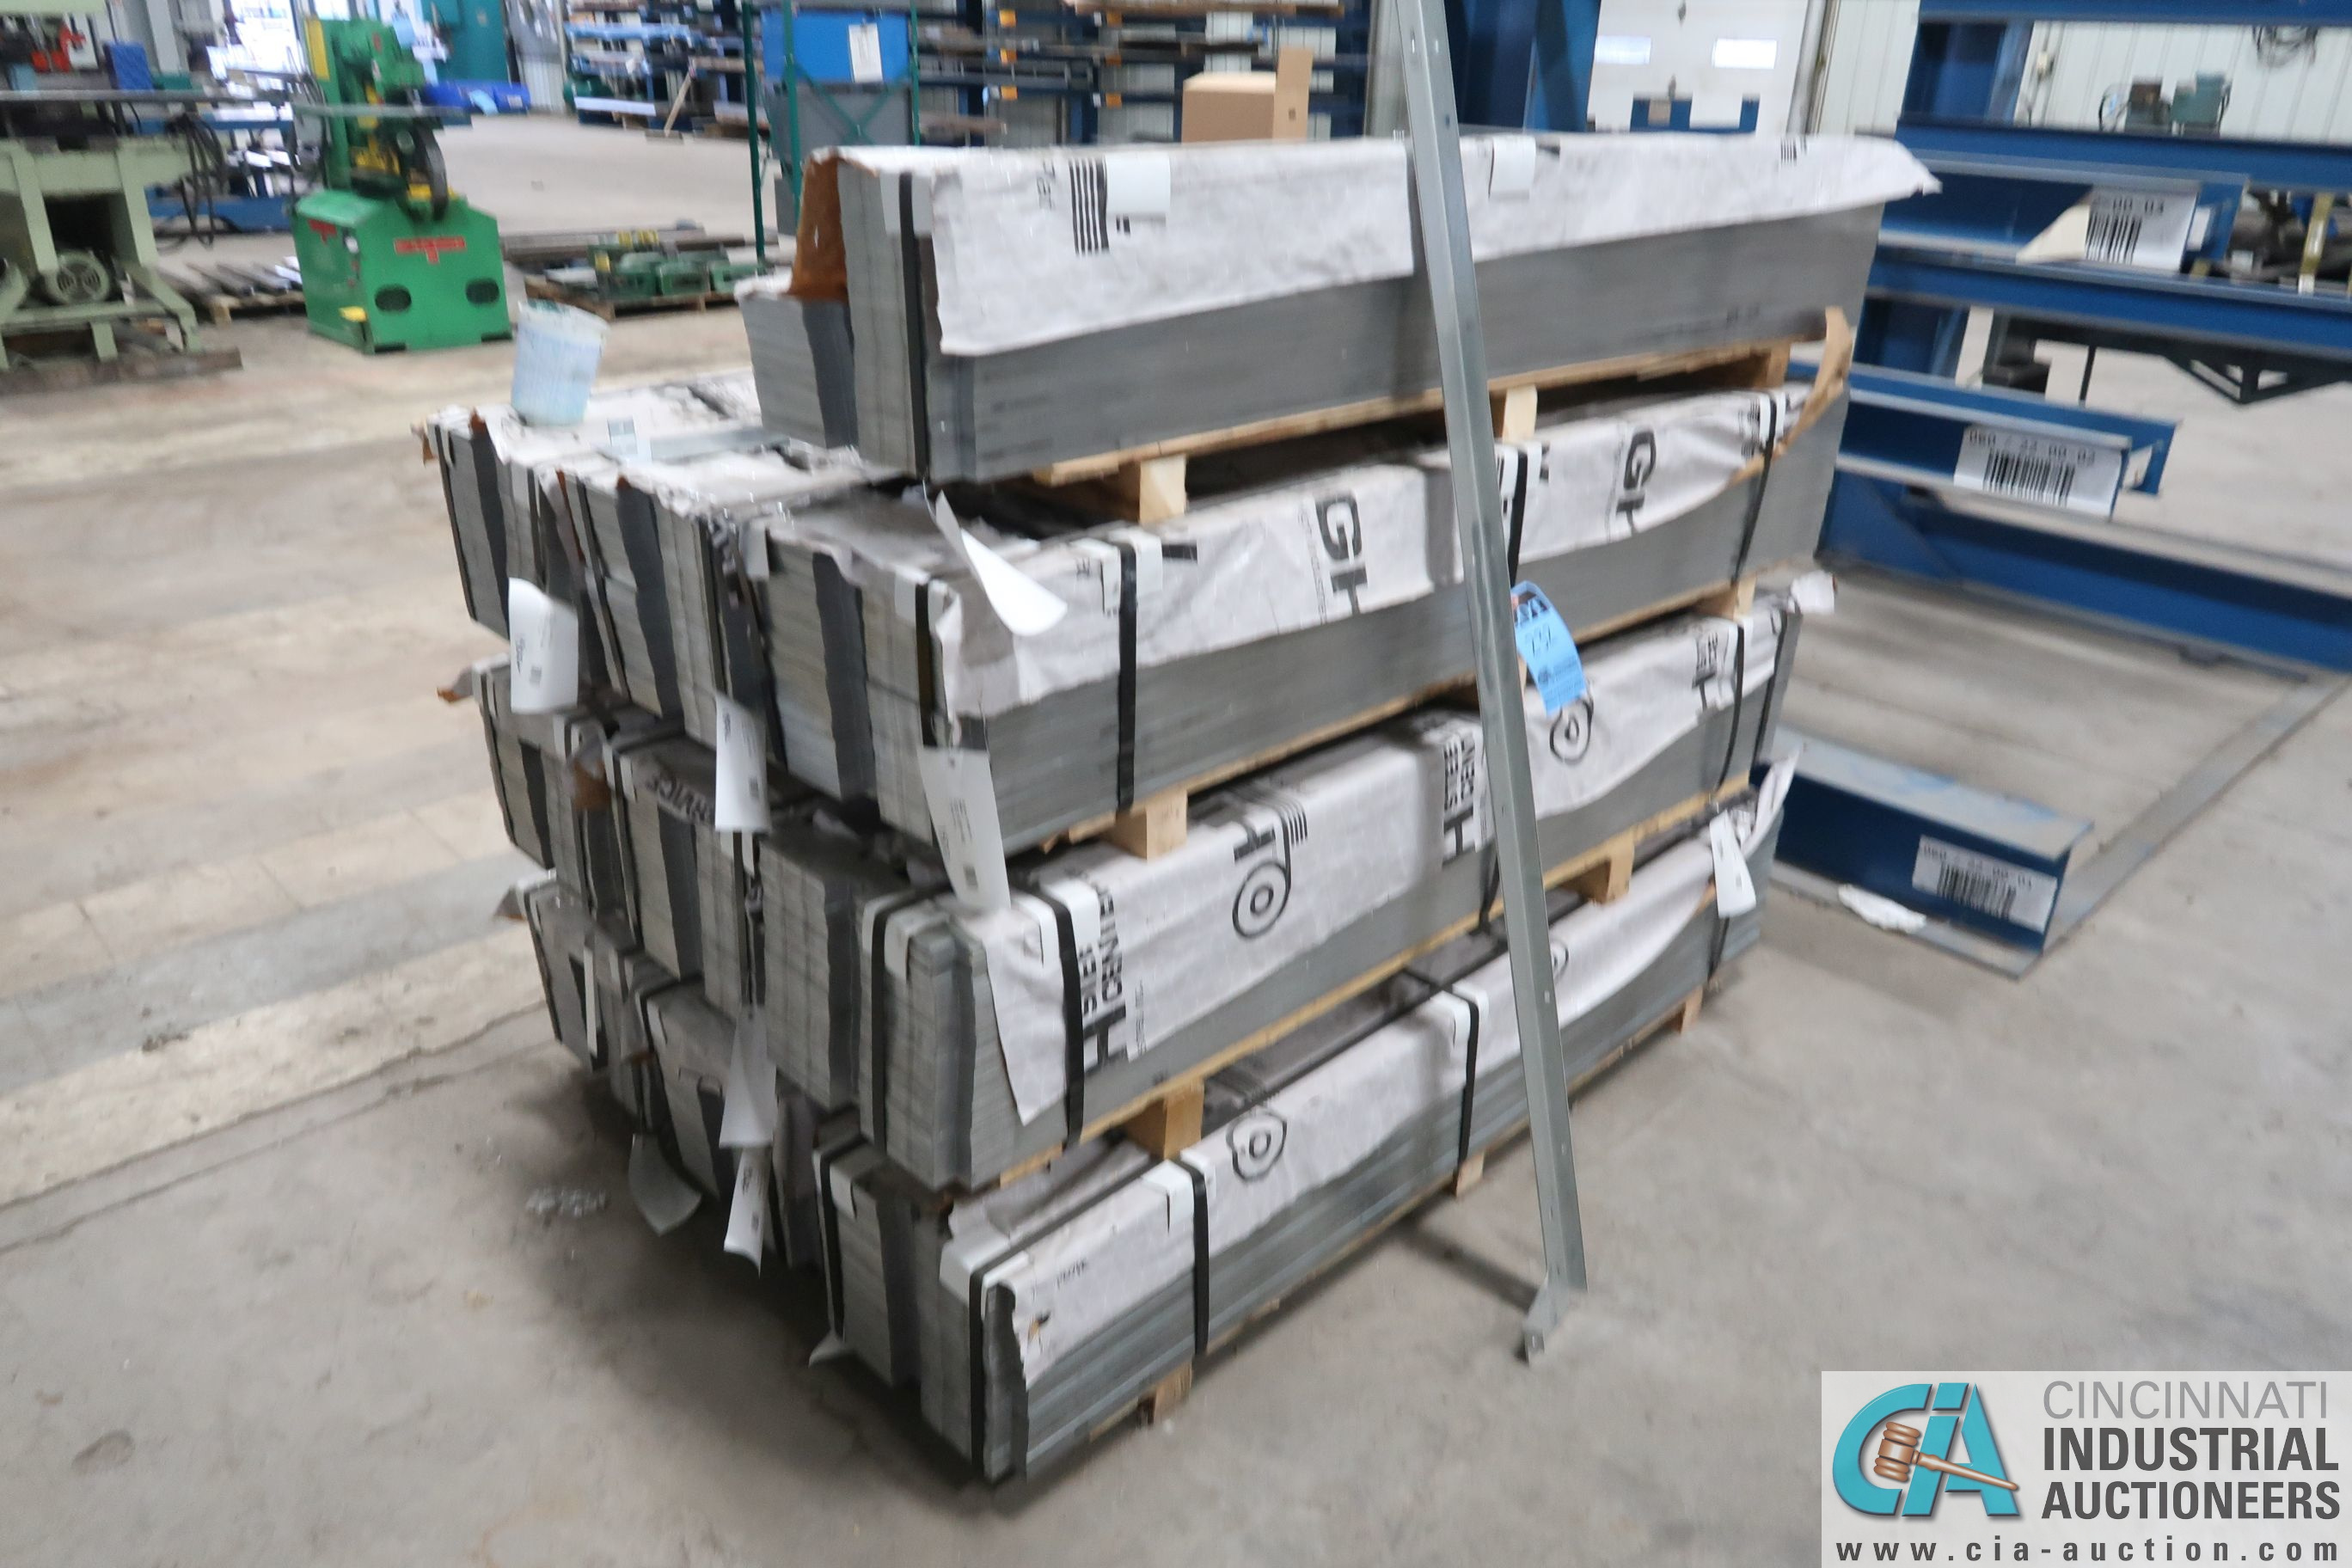 BUNDLES OF STEEL FABRICATED ASSEMBLIES AND ROLL OF WIRE - Image 3 of 3